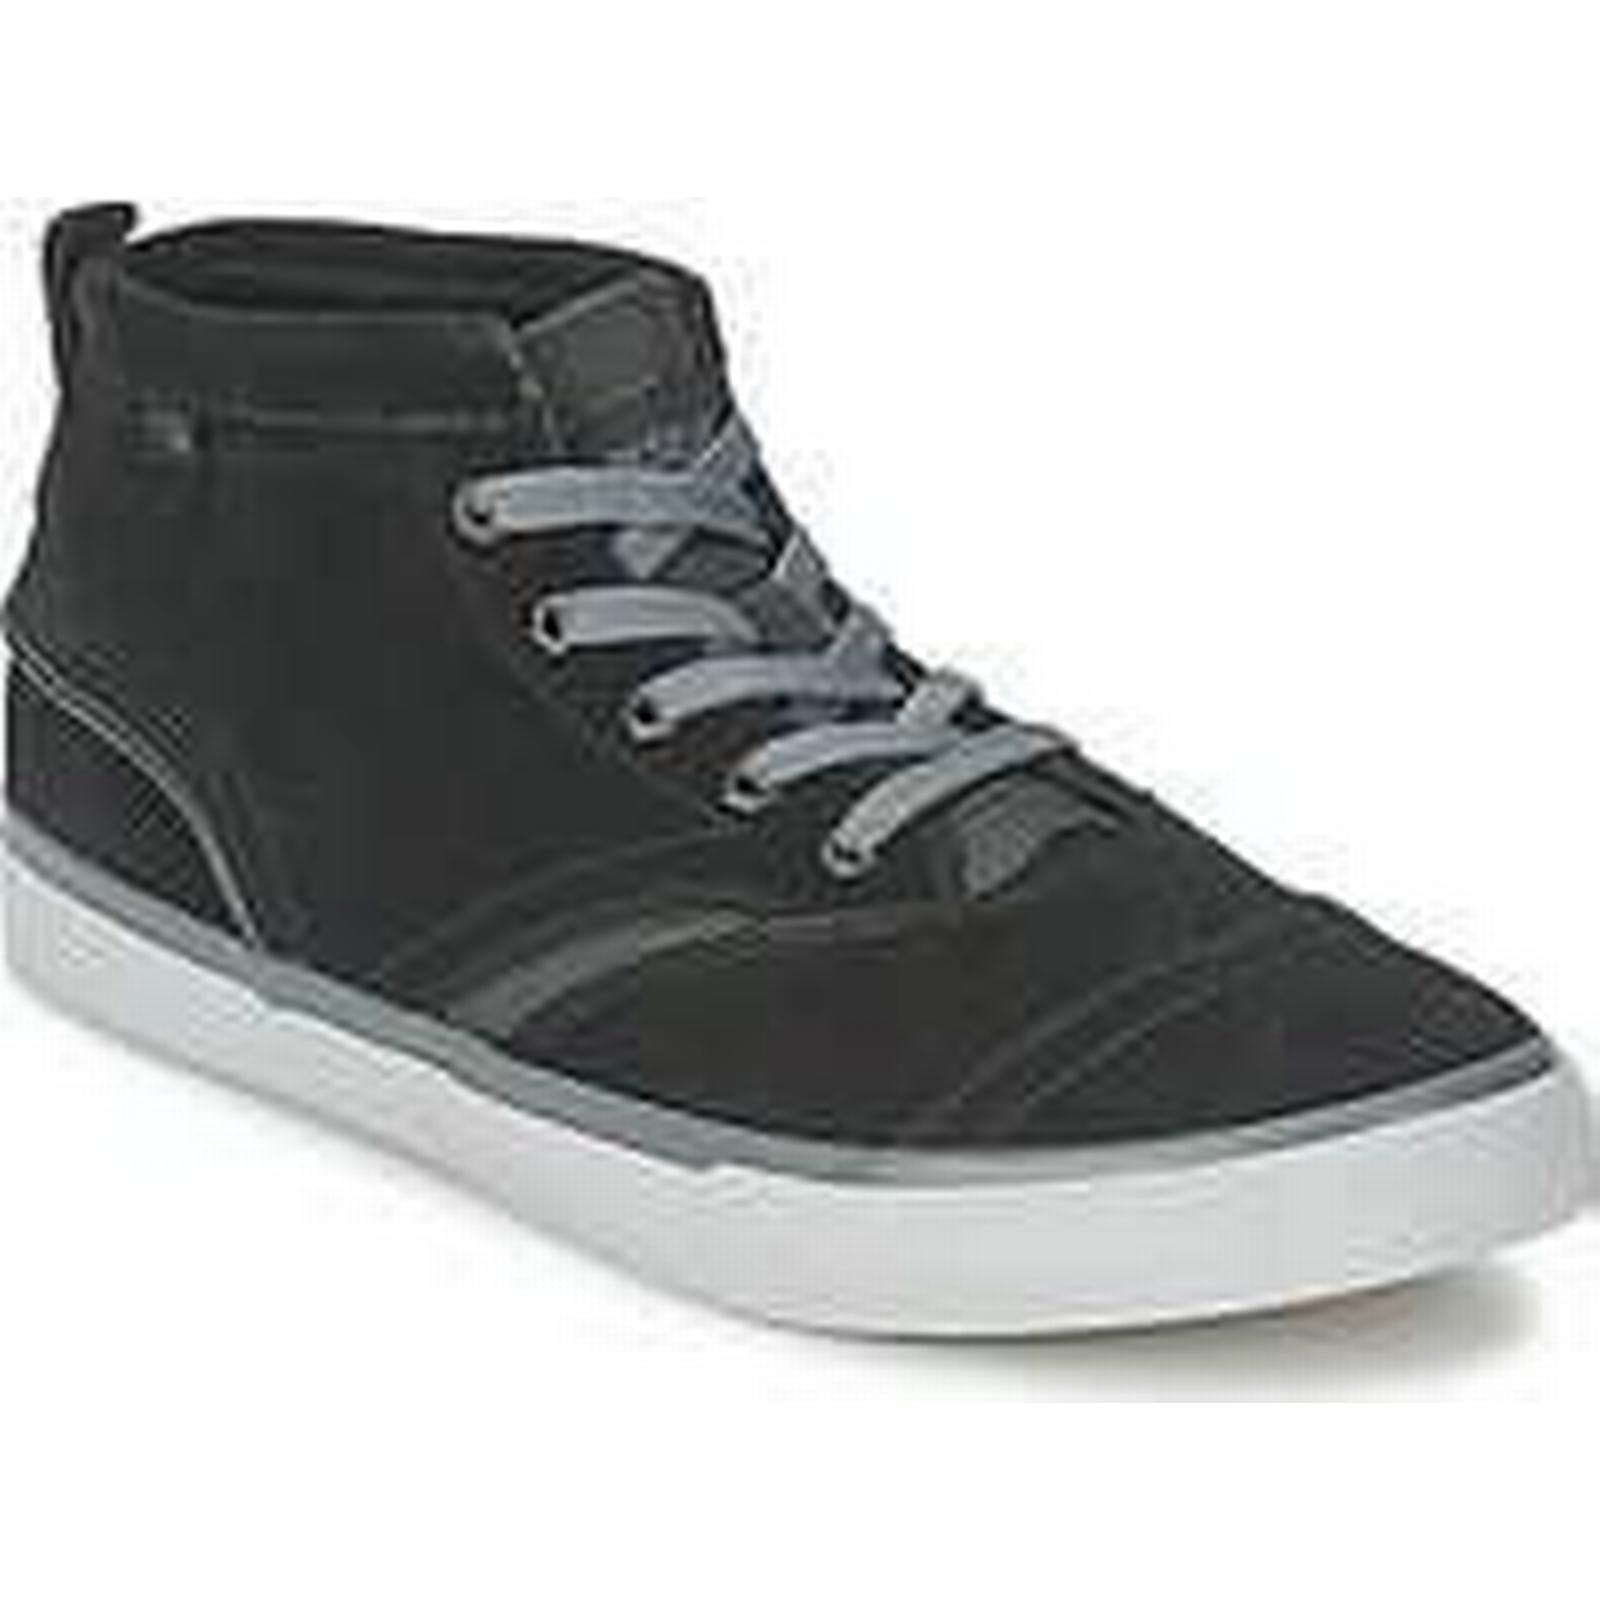 Spartoo.co.uk Shoes Quiksilver HEYDEN SUEDE men's Shoes Spartoo.co.uk (High-top Trainers) in Black 90e601